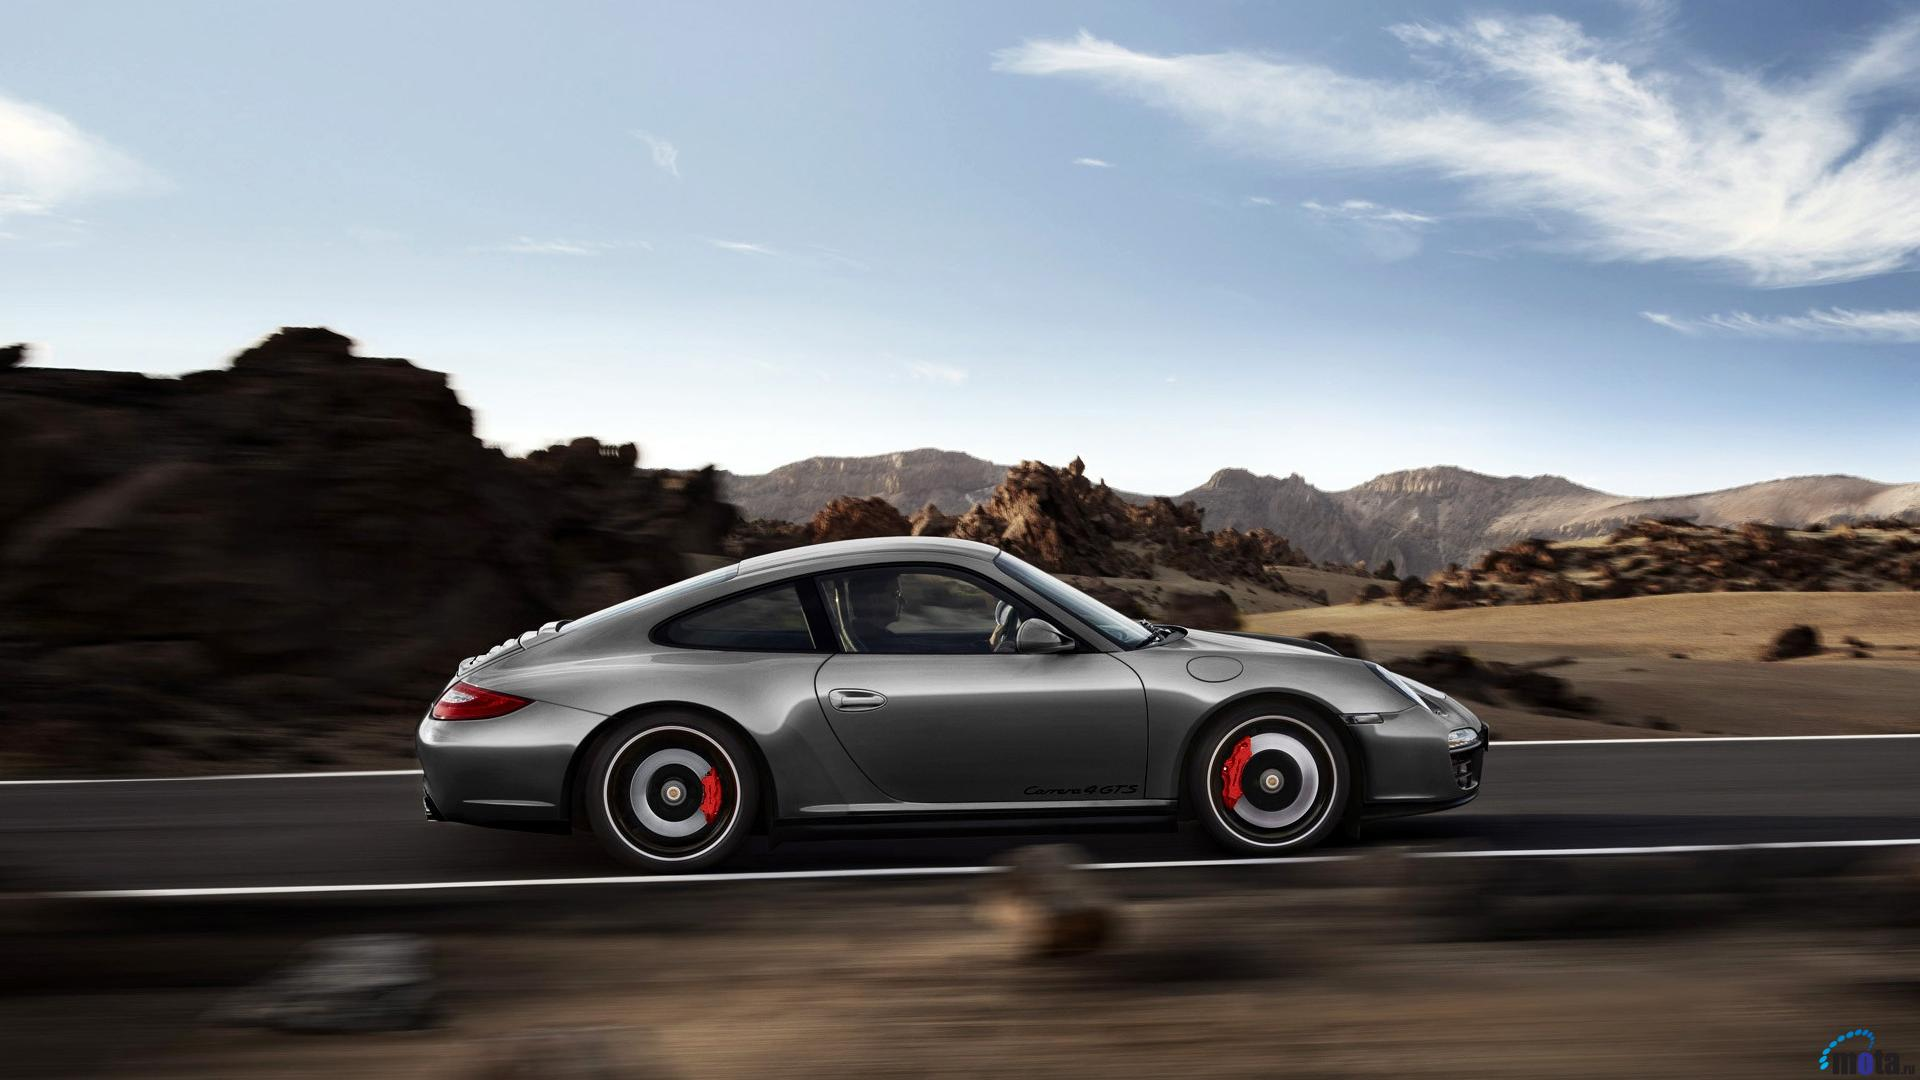 Download Wallpaper Porsche 911 Carrera 4 GTS coupe 1920 x 1920x1080